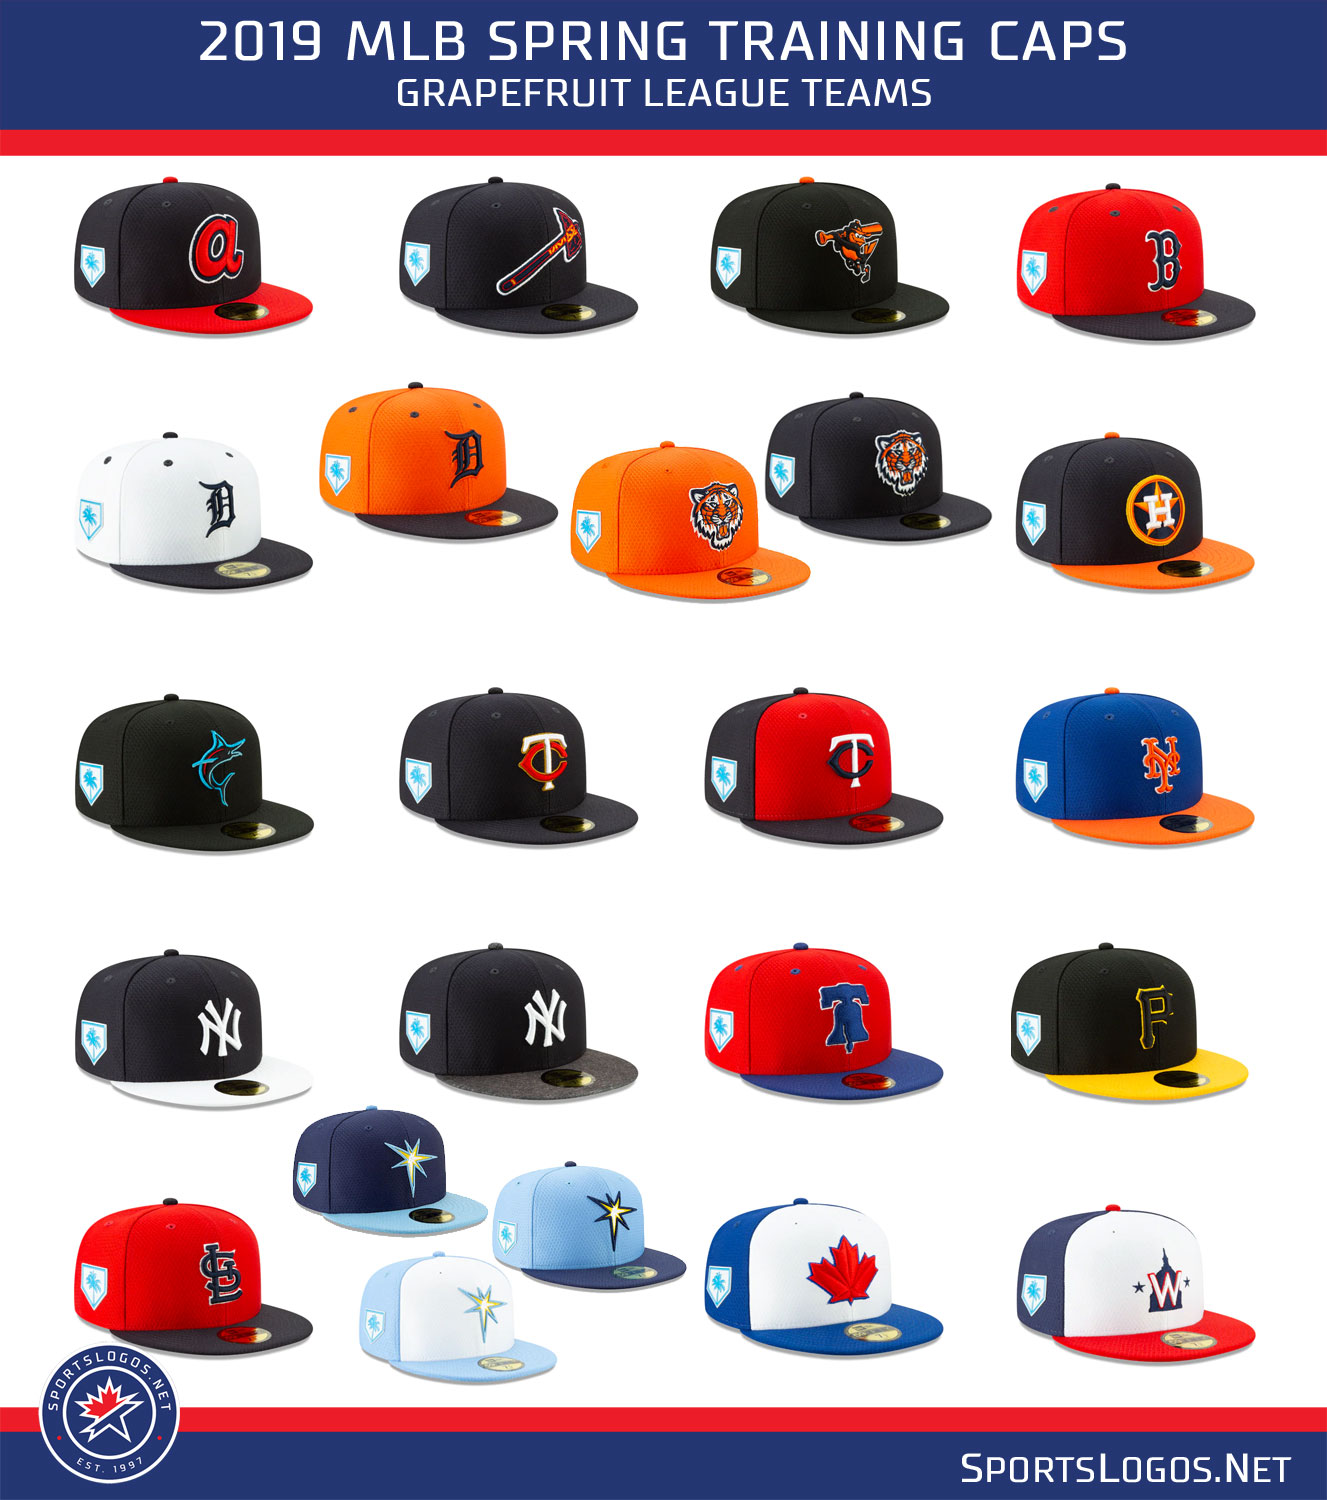 c1874a247cb Here are the entire 2019 MLB Spring Training on-field cap collections